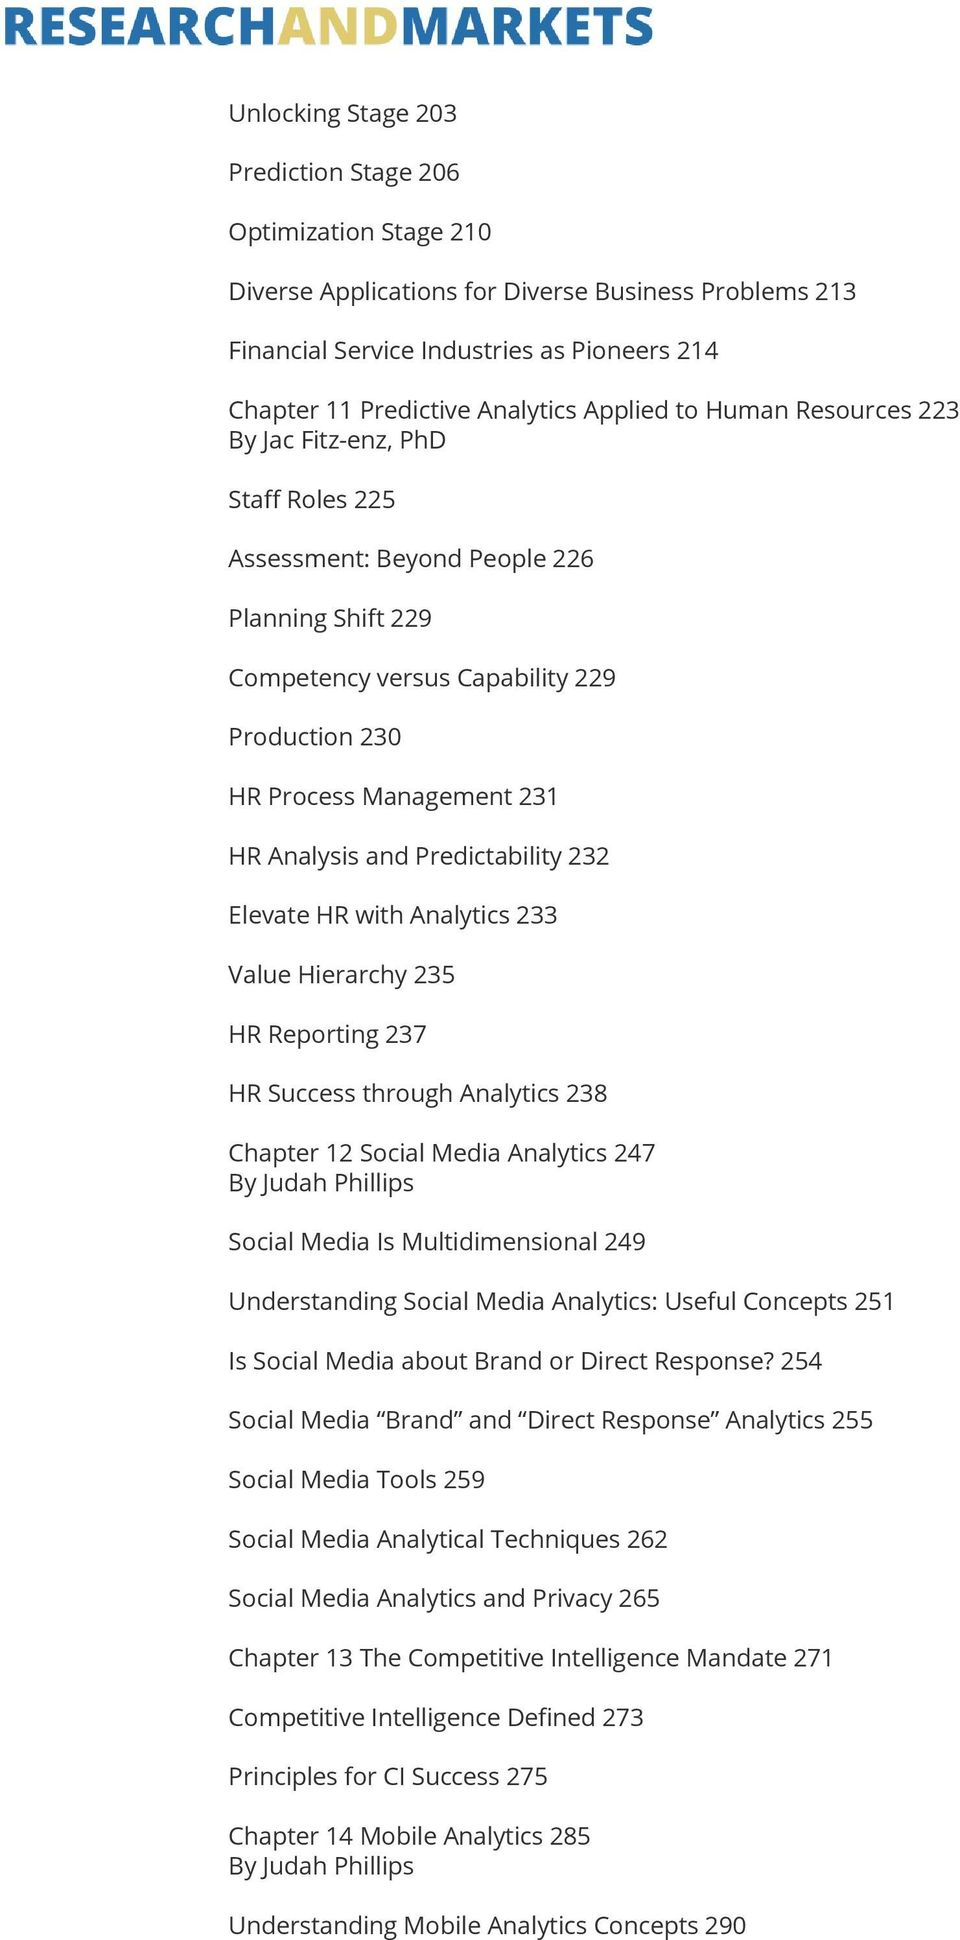 Analysis and Predictability 232 Elevate HR with Analytics 233 Value Hierarchy 235 HR Reporting 237 HR Success through Analytics 238 Chapter 12 Social Media Analytics 247 By Judah Phillips Social